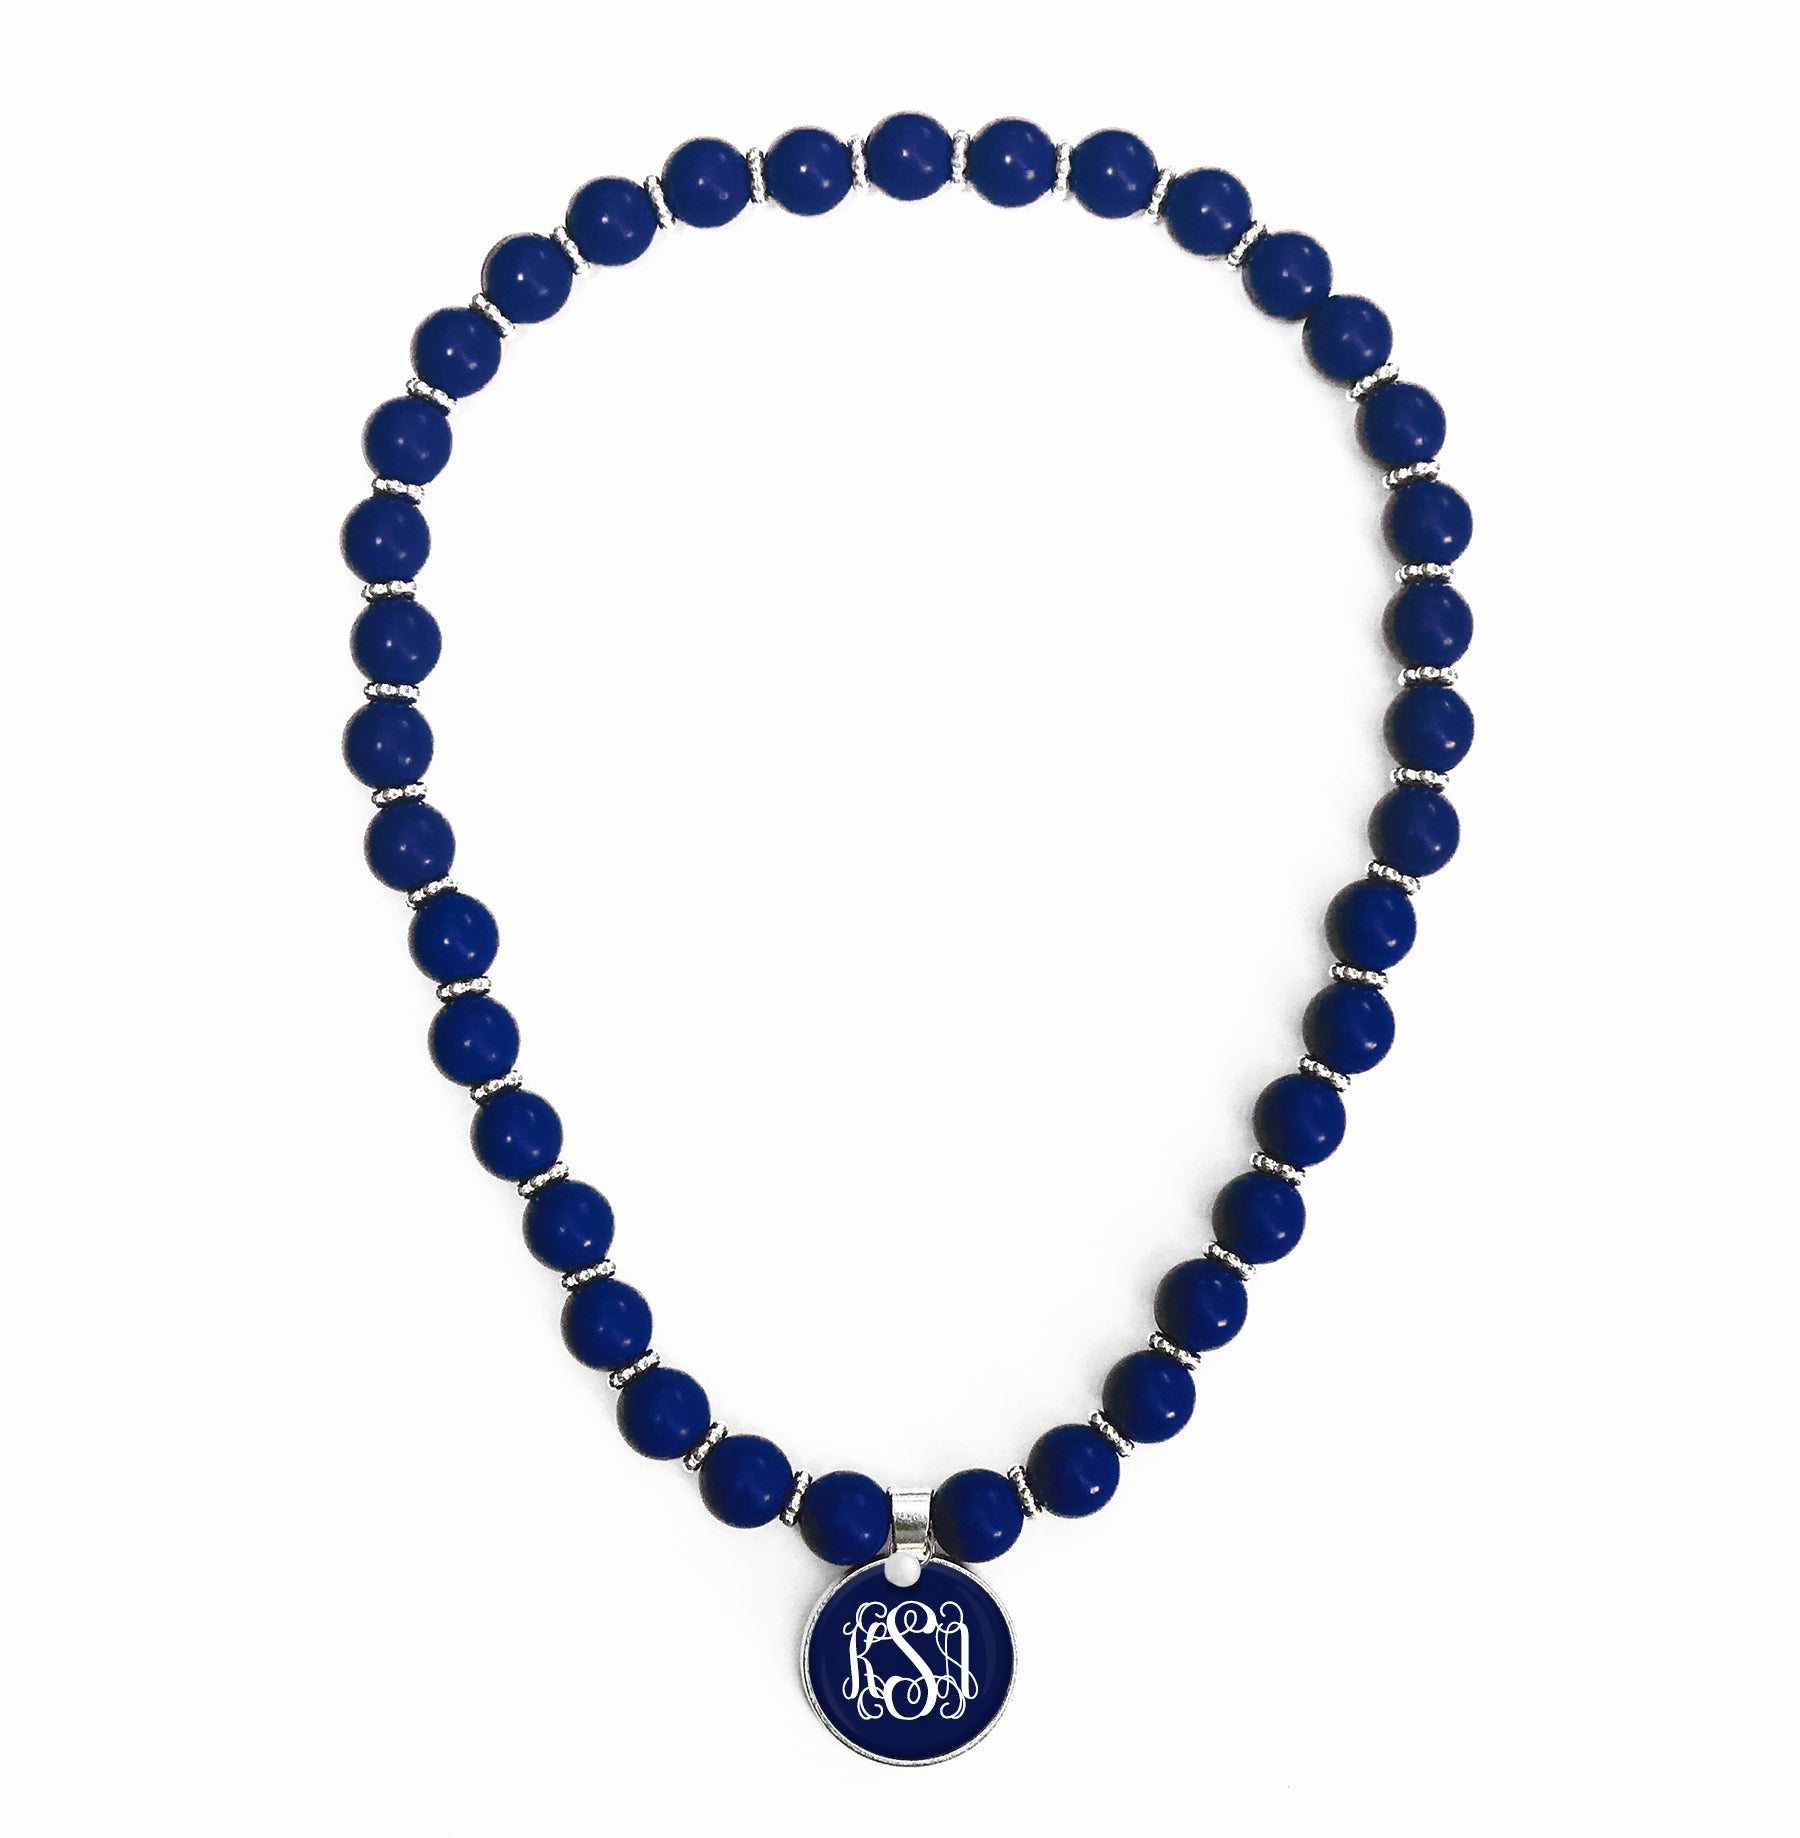 Beaded Monogram Necklace - Navy